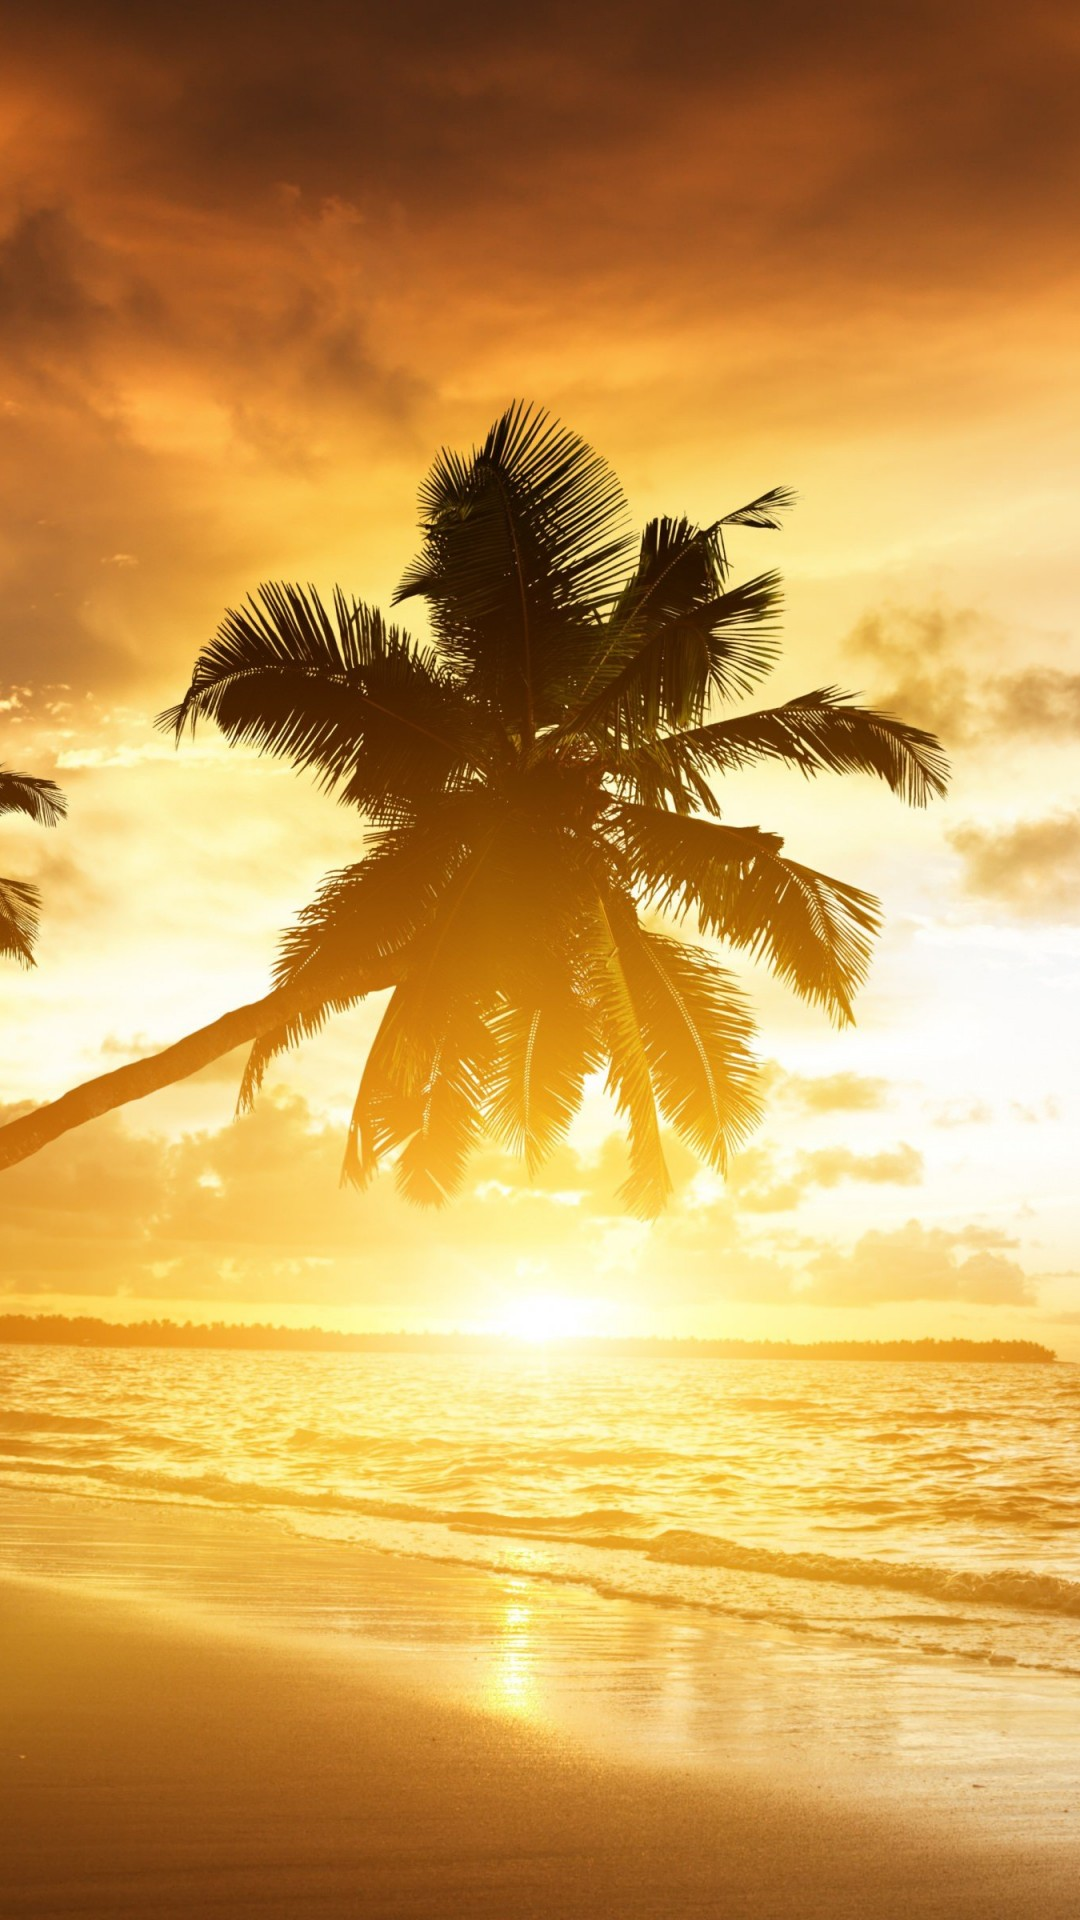 Beach With Palm Trees At Sunset Wallpaper for SONY Xperia Z3